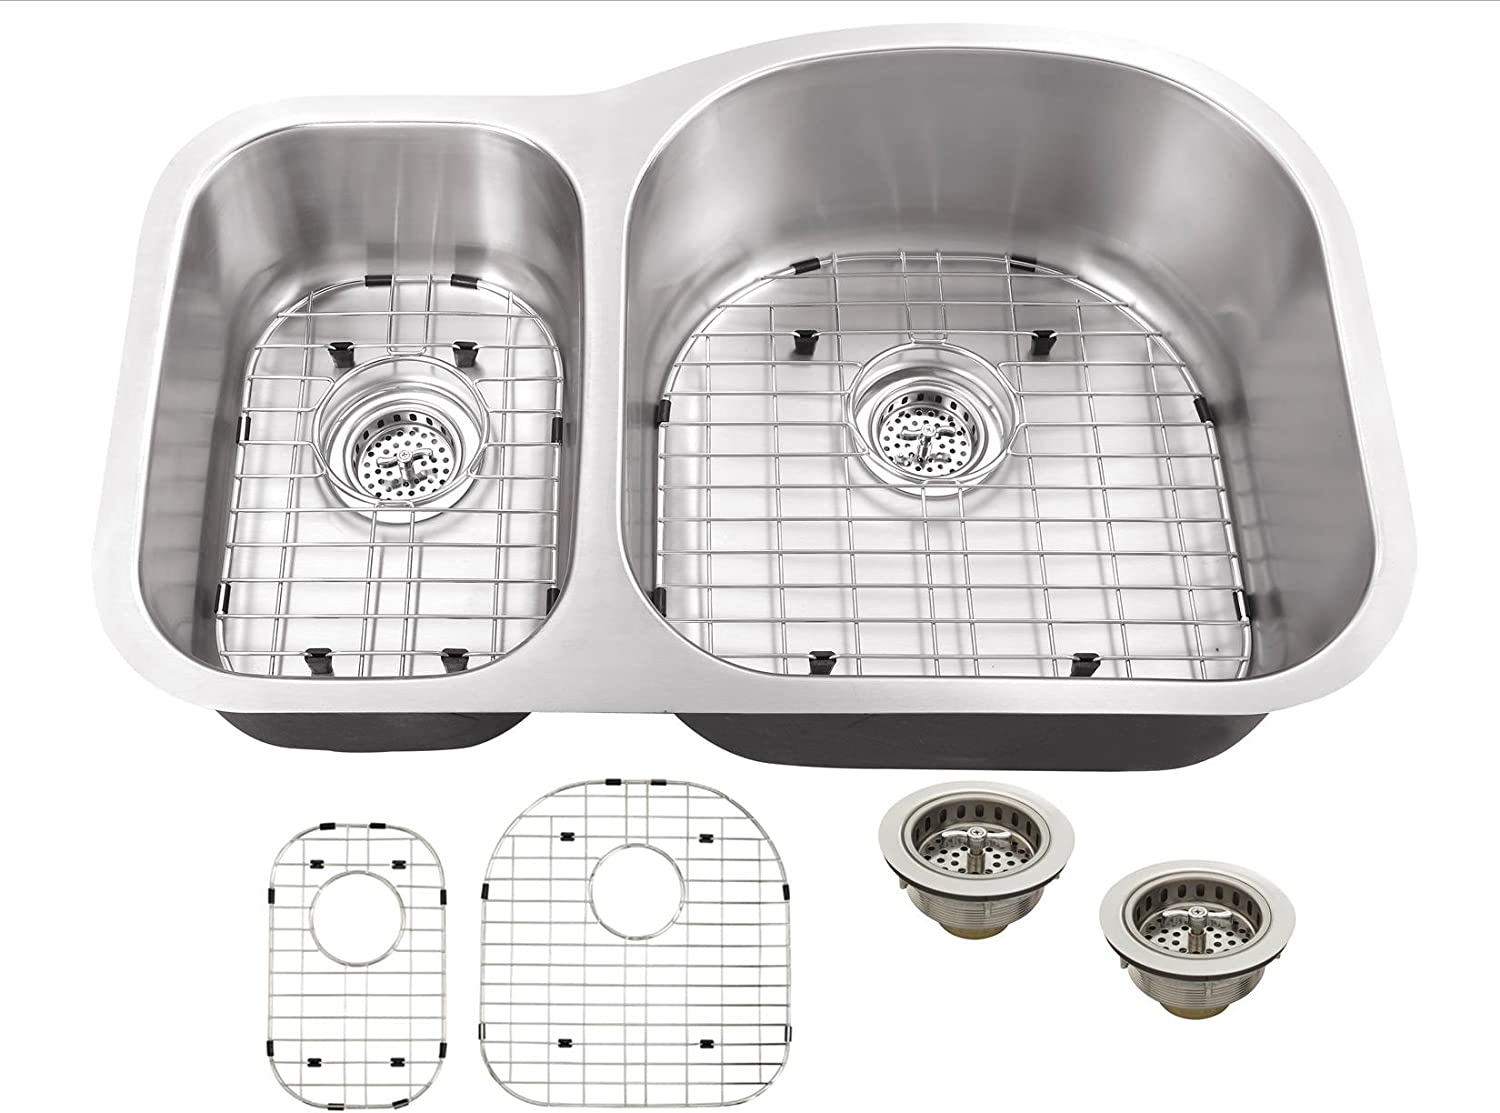 MSLX3070P 16-Gauge 32-in x 20 3 4-in x 9-in Stainless Steel 30 70 Offset Double Bowl Kitchen Sink with Grid Set and Strainers